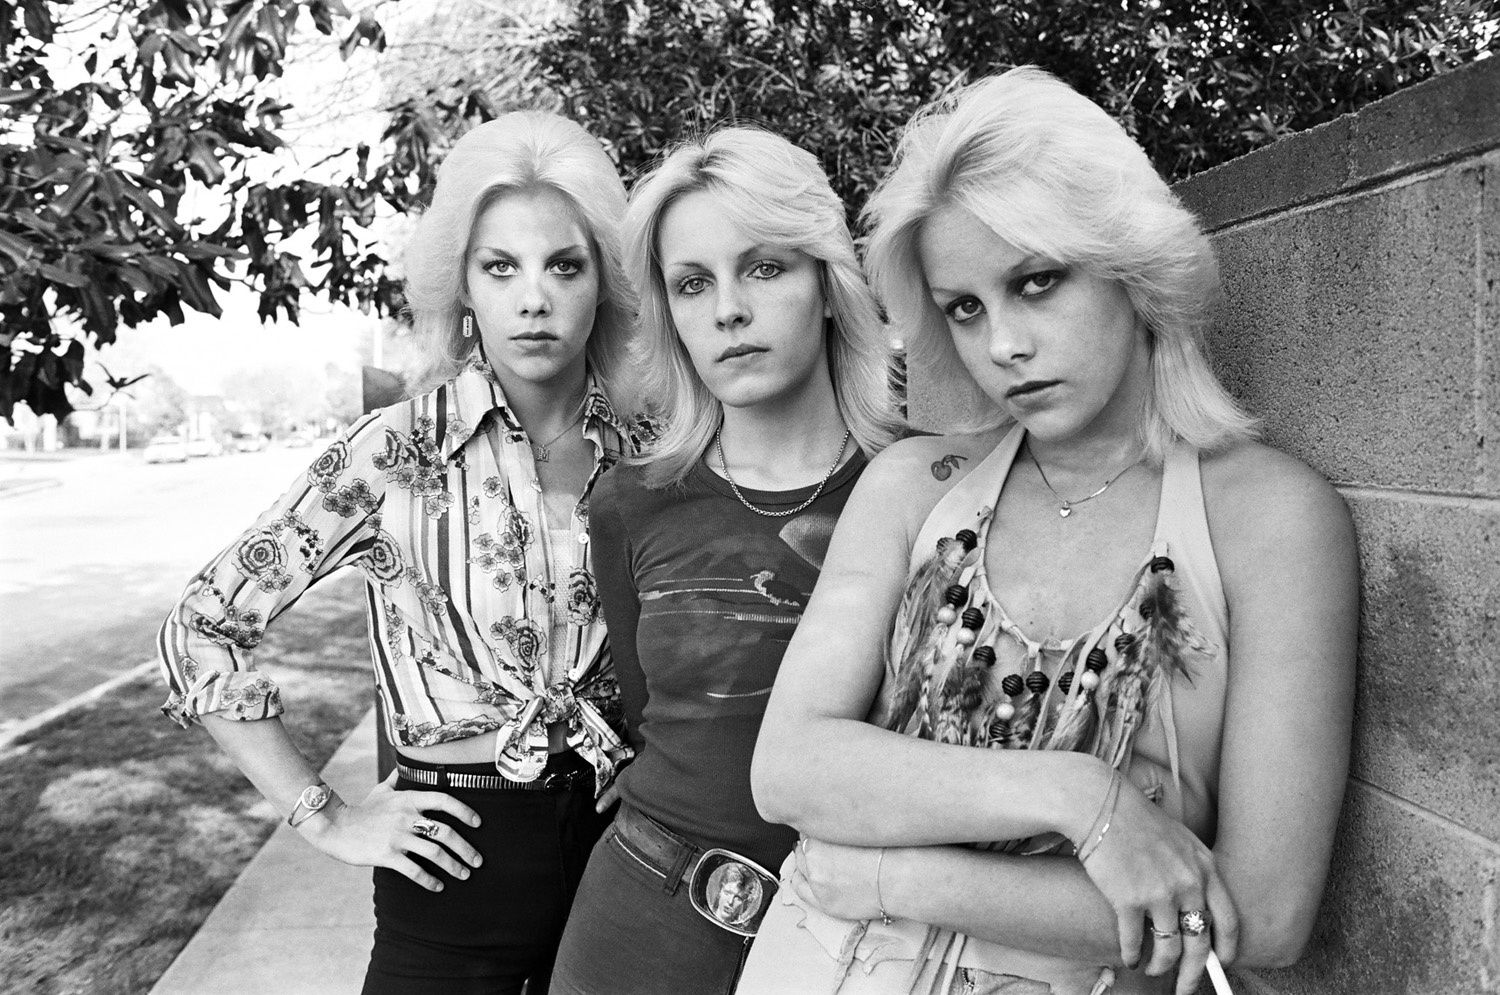 An archival photo of Cherie Currie with her twin Marie and Vicki Razor Blade in the San Fernando Valley, Los Angeles - Photo Brad Elterman